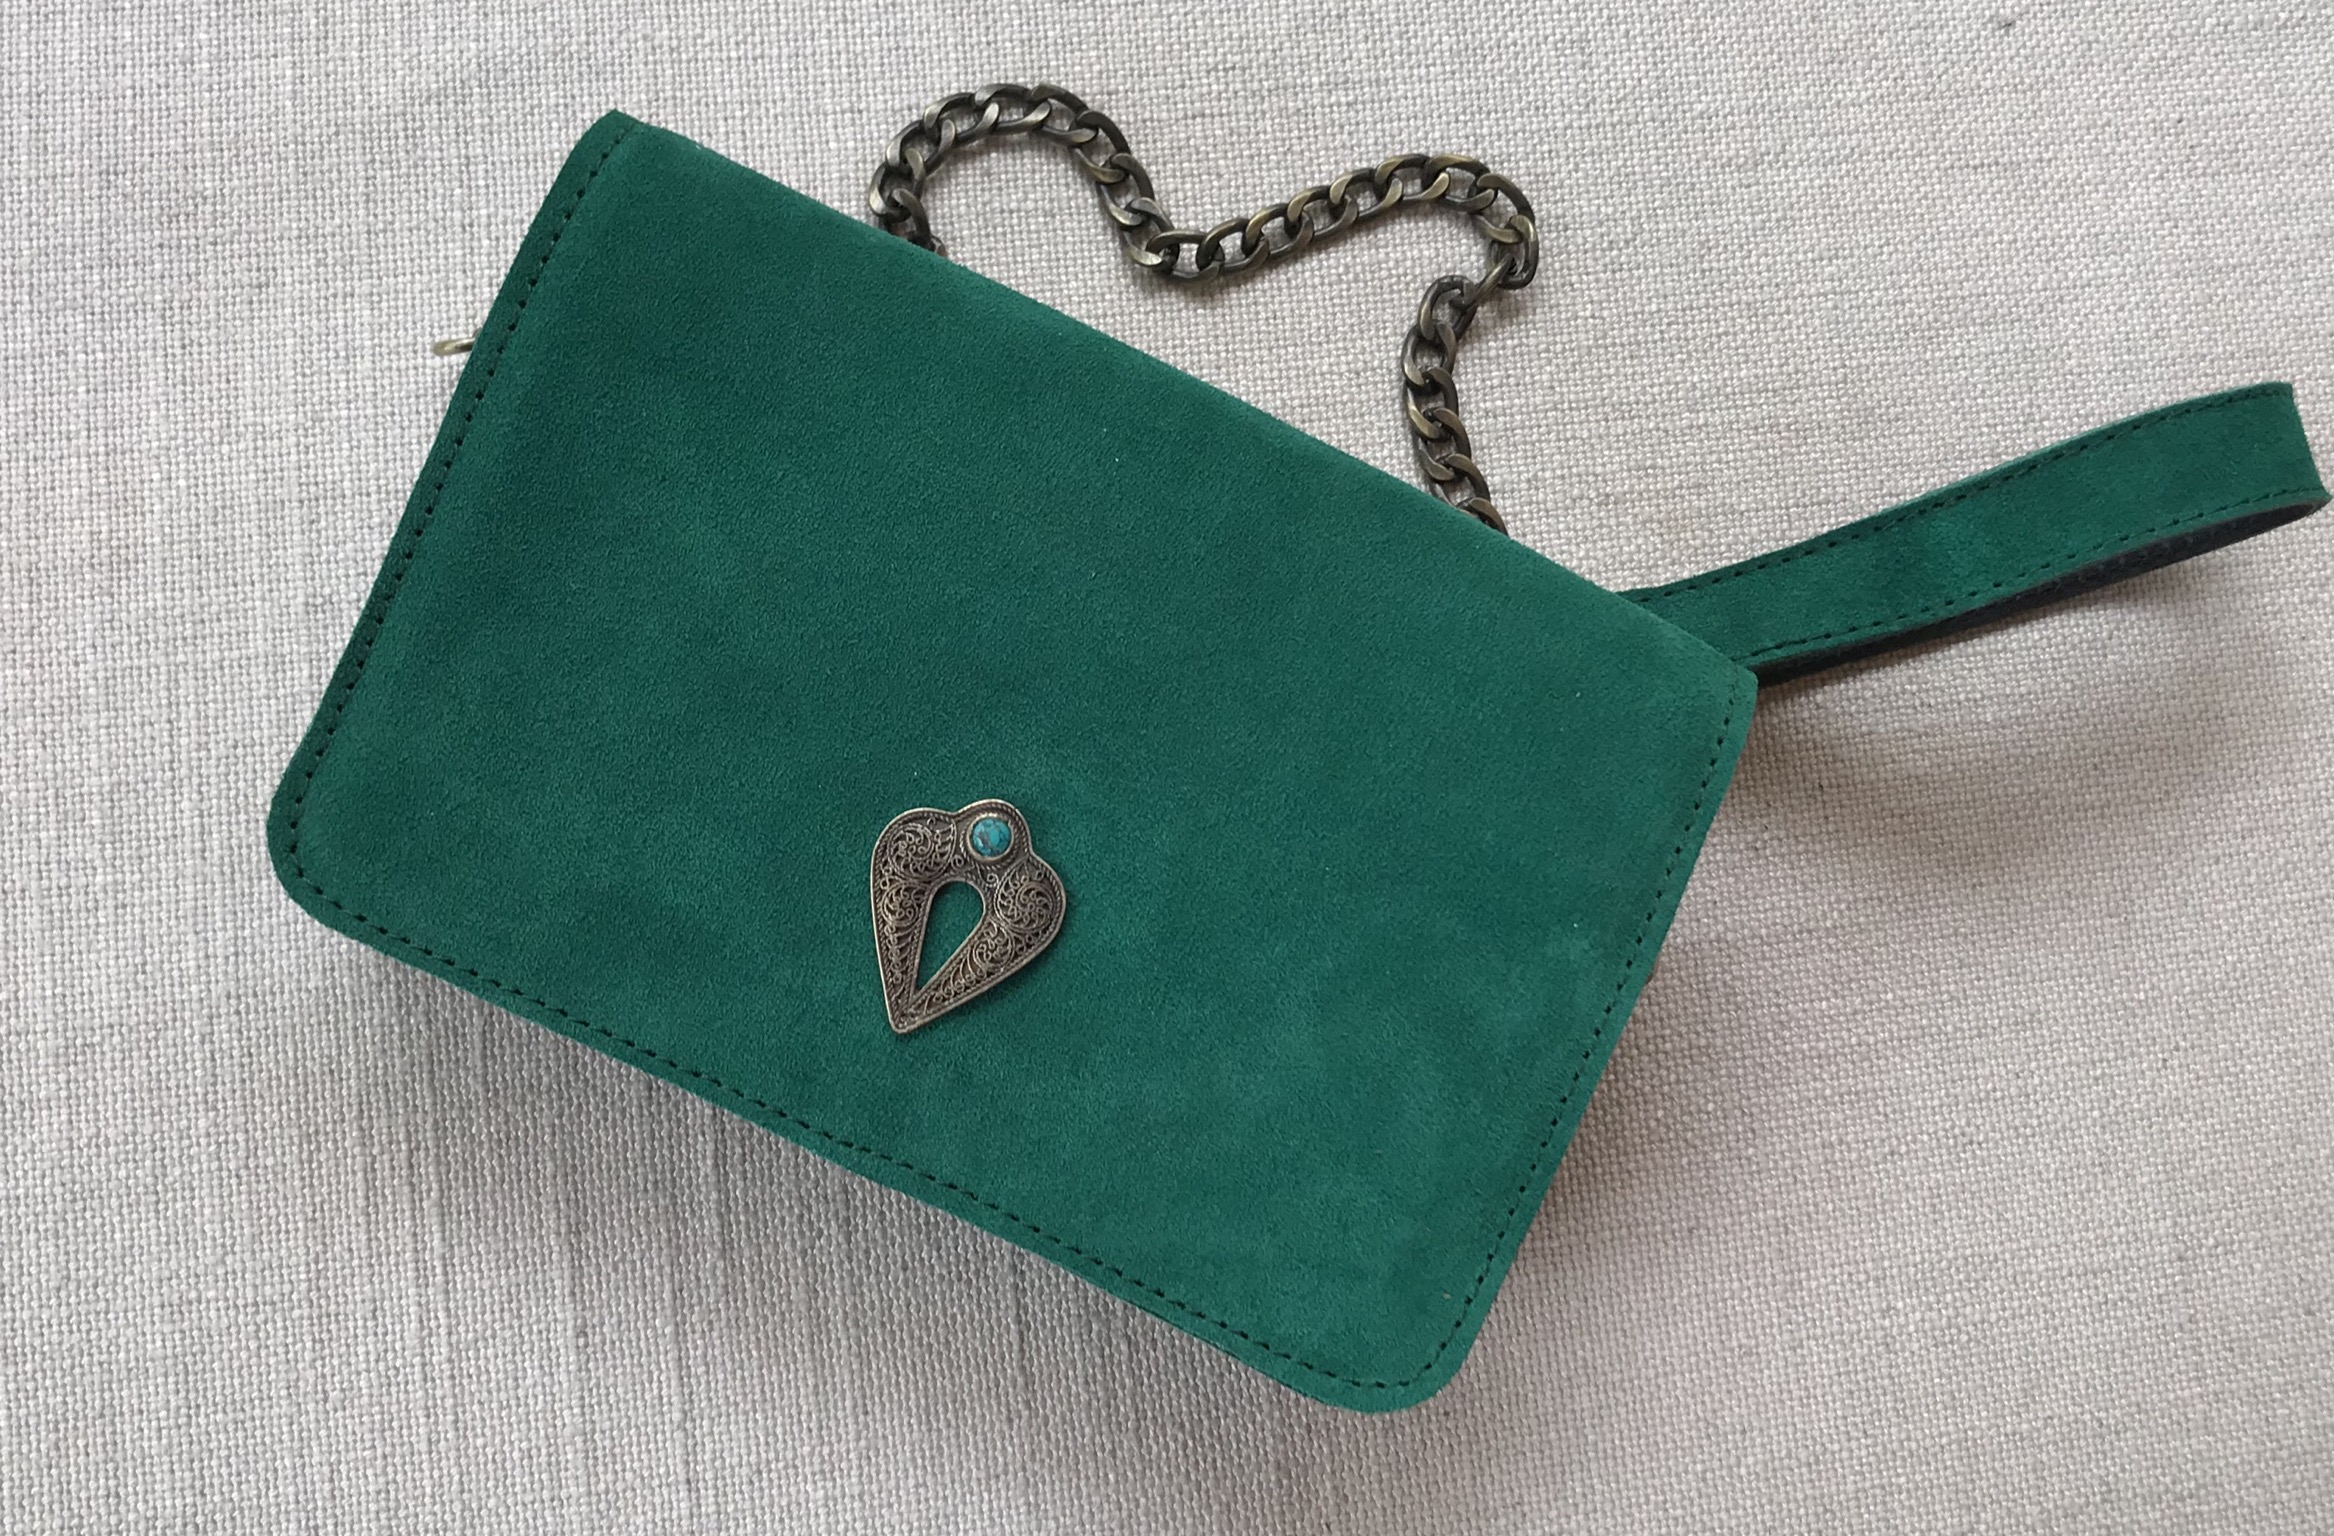 bag Mini suede leather green with artisanal jewelry